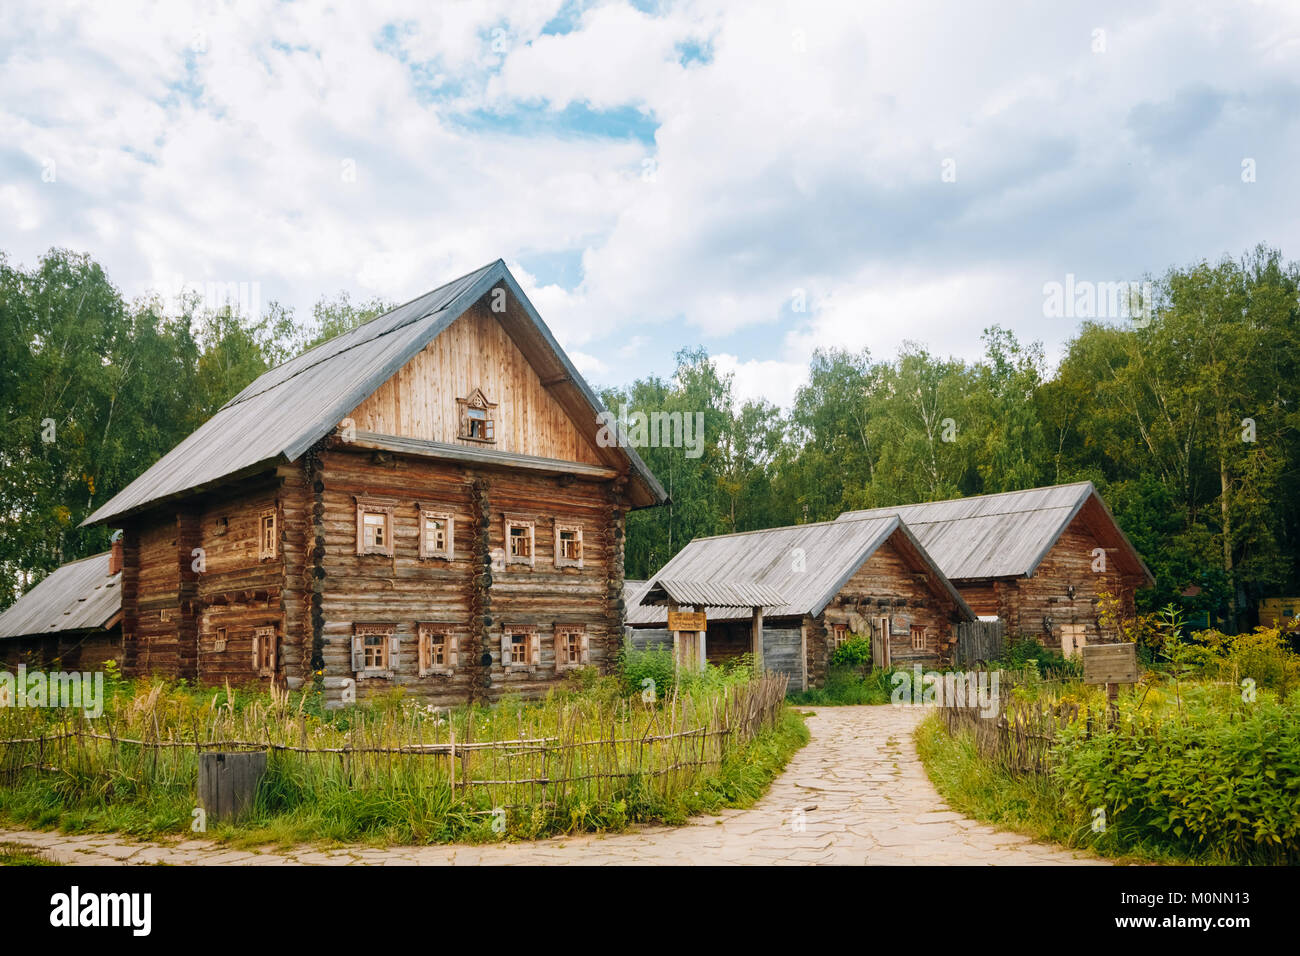 Wooden house and other buildings of wood near the forest. - Stock Image